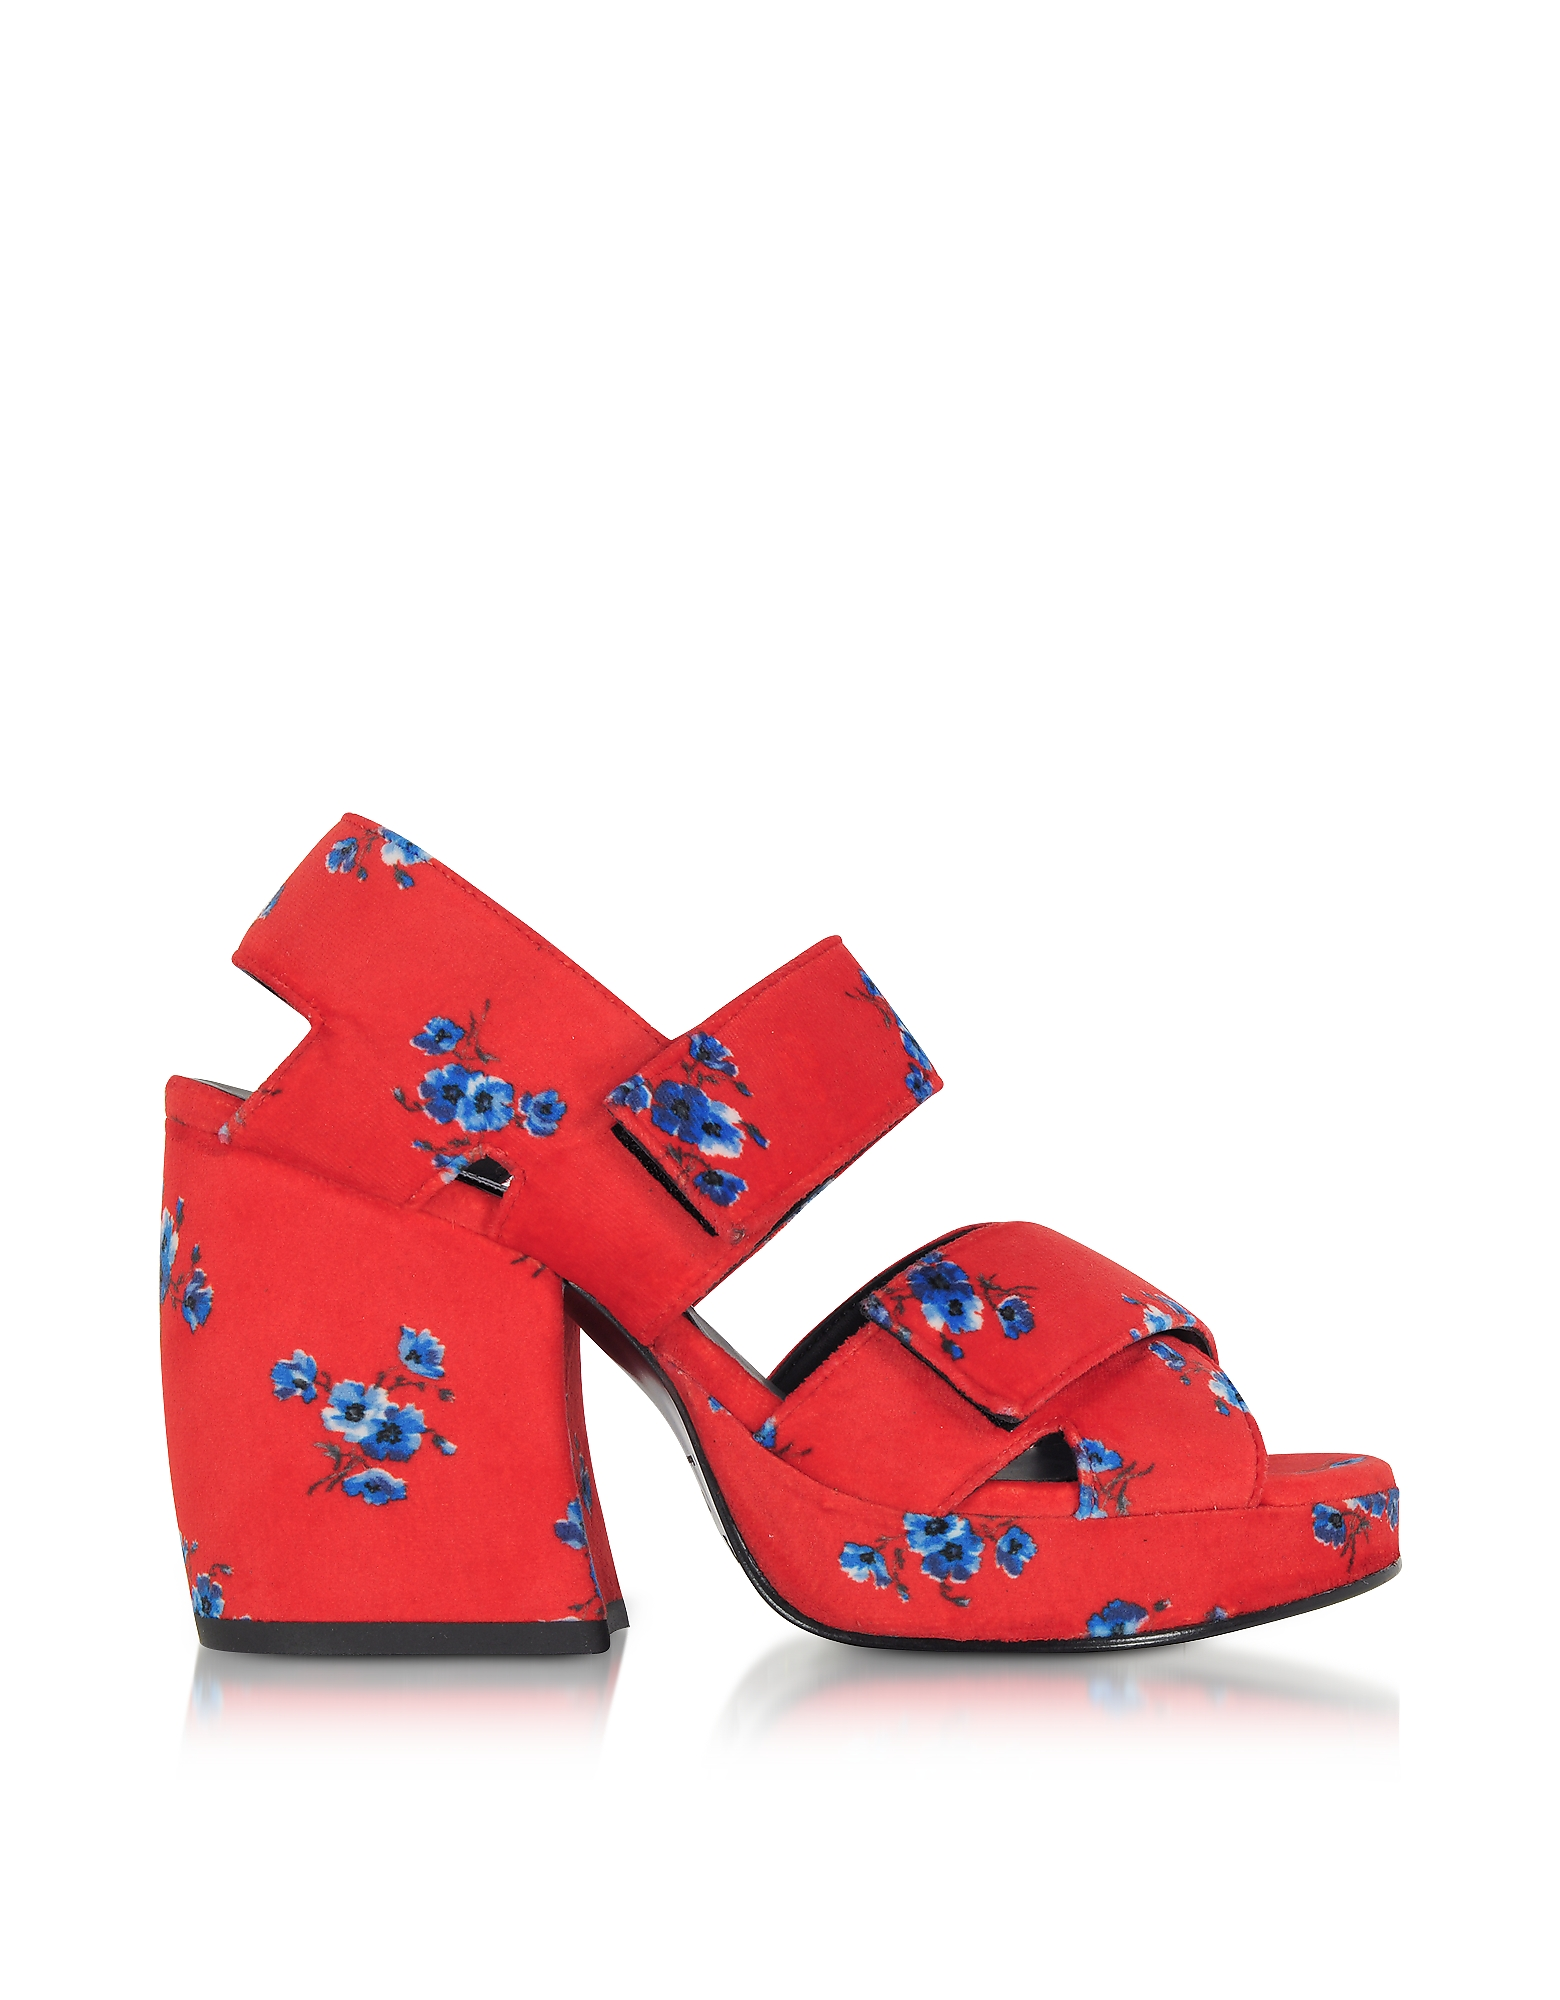 Kenzo Shoes, Red Fabric Memento Heeled Platform Sandals